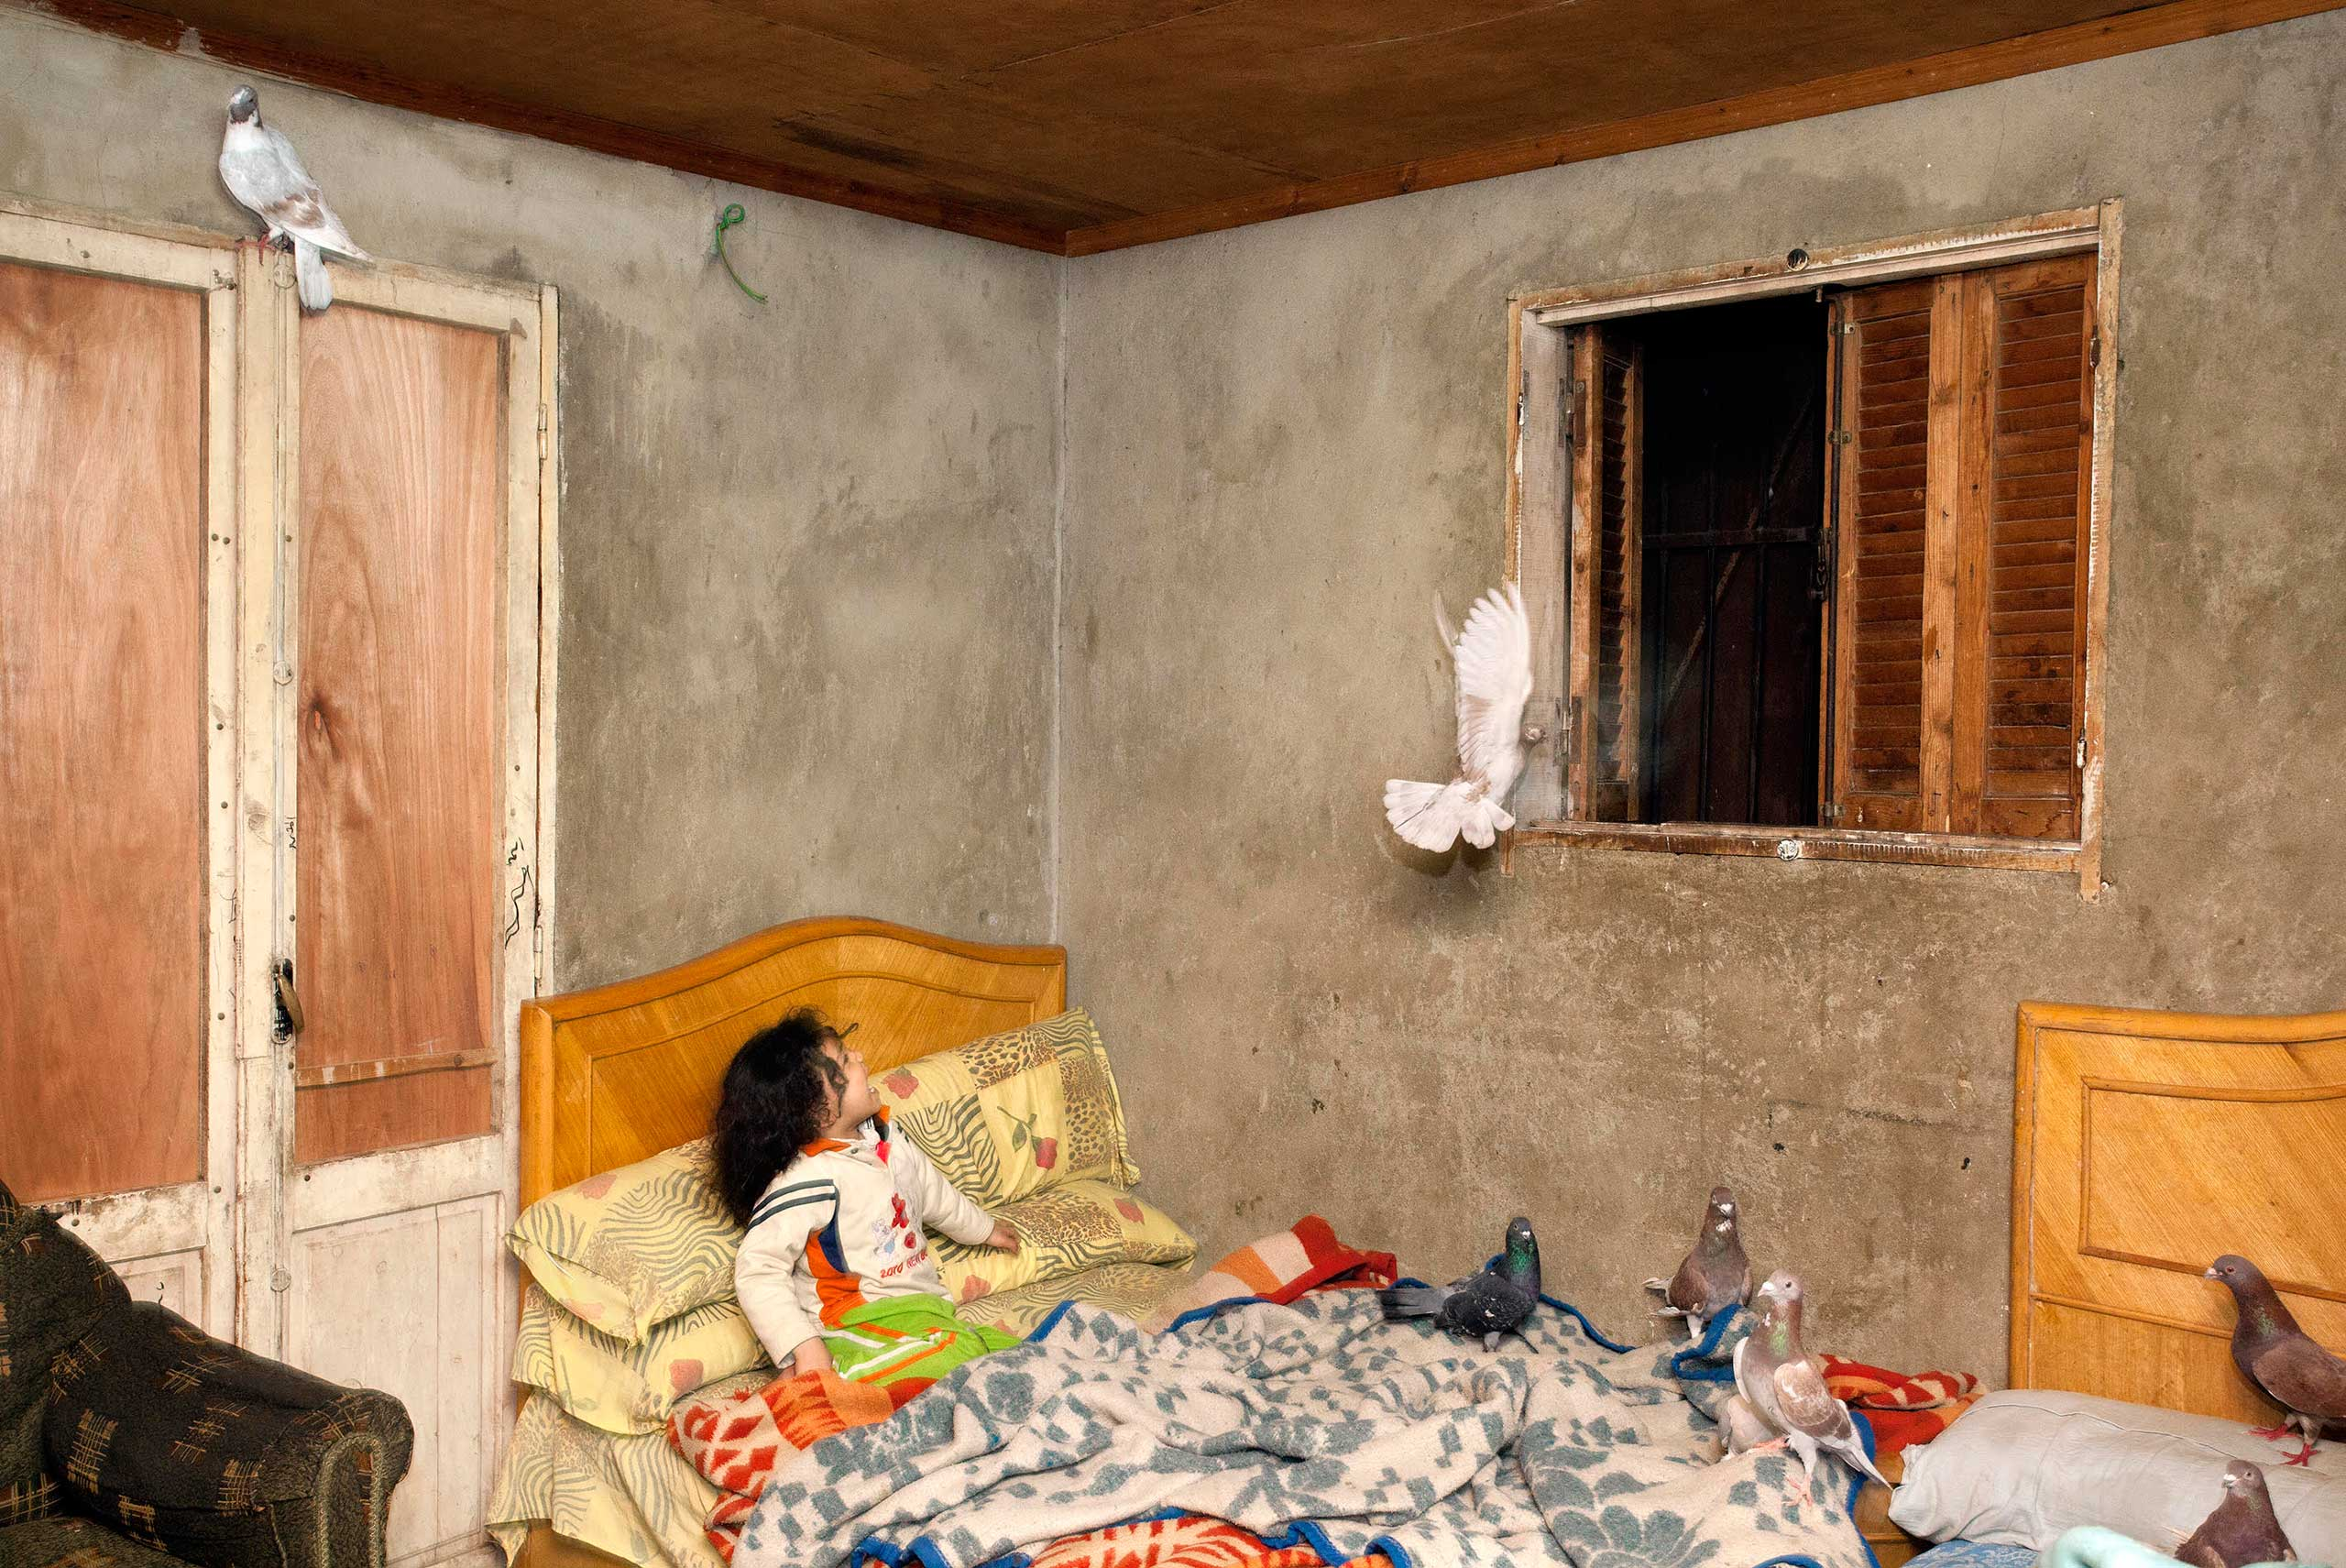 A young girl reacts to a pigeon flying around her room in Cairo, Egypt, March 2012.